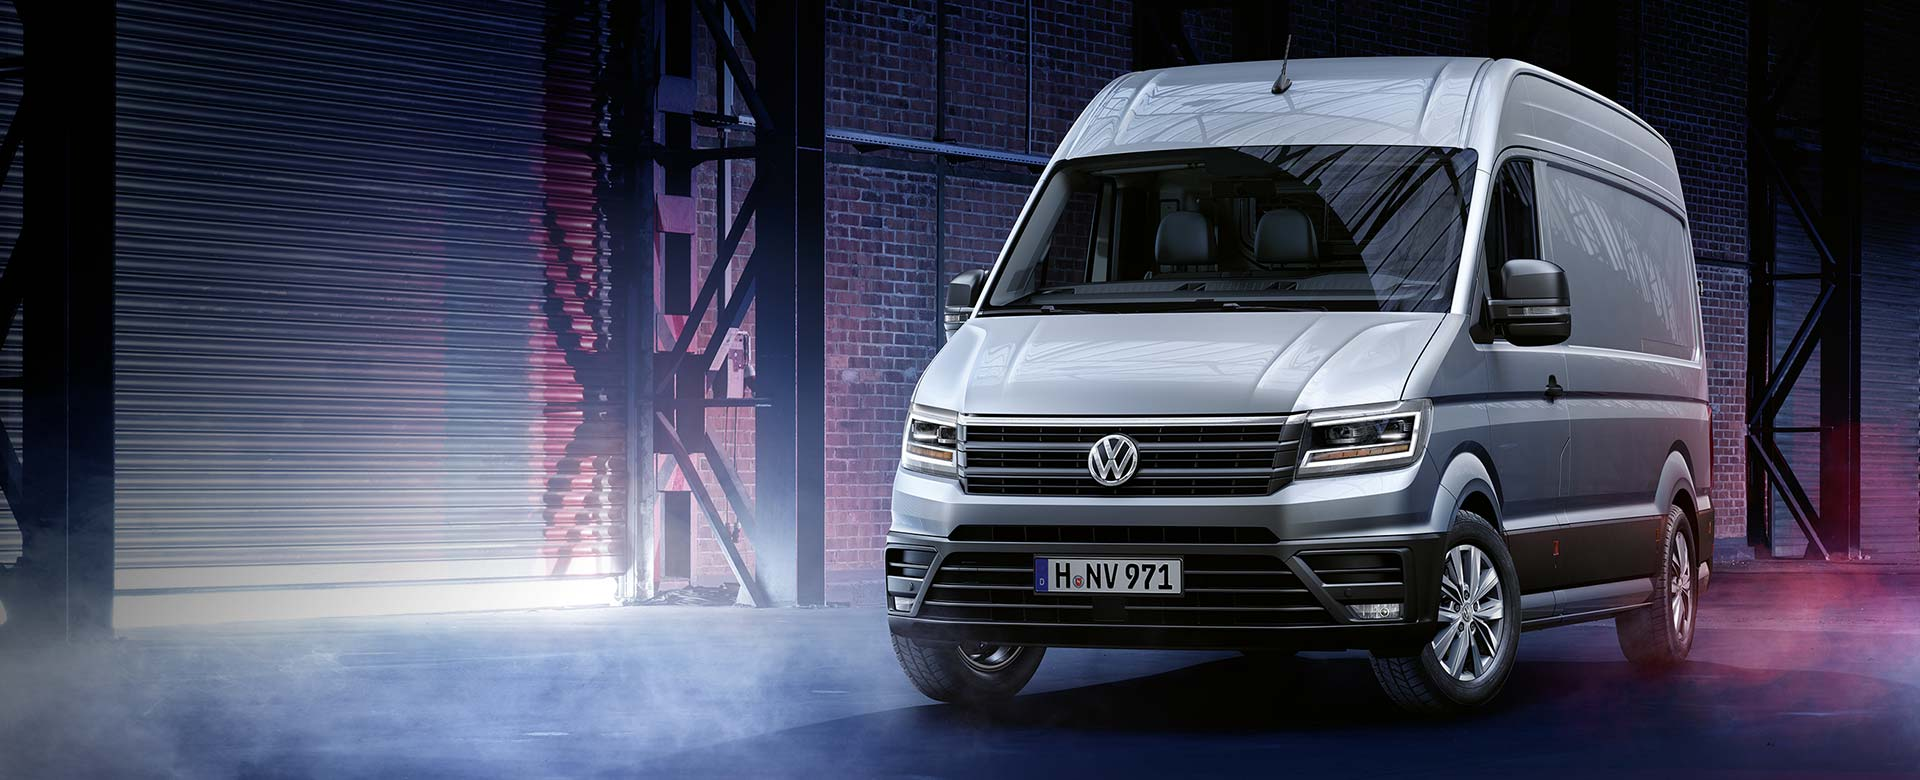 The 2017 Volkswagen Crafter